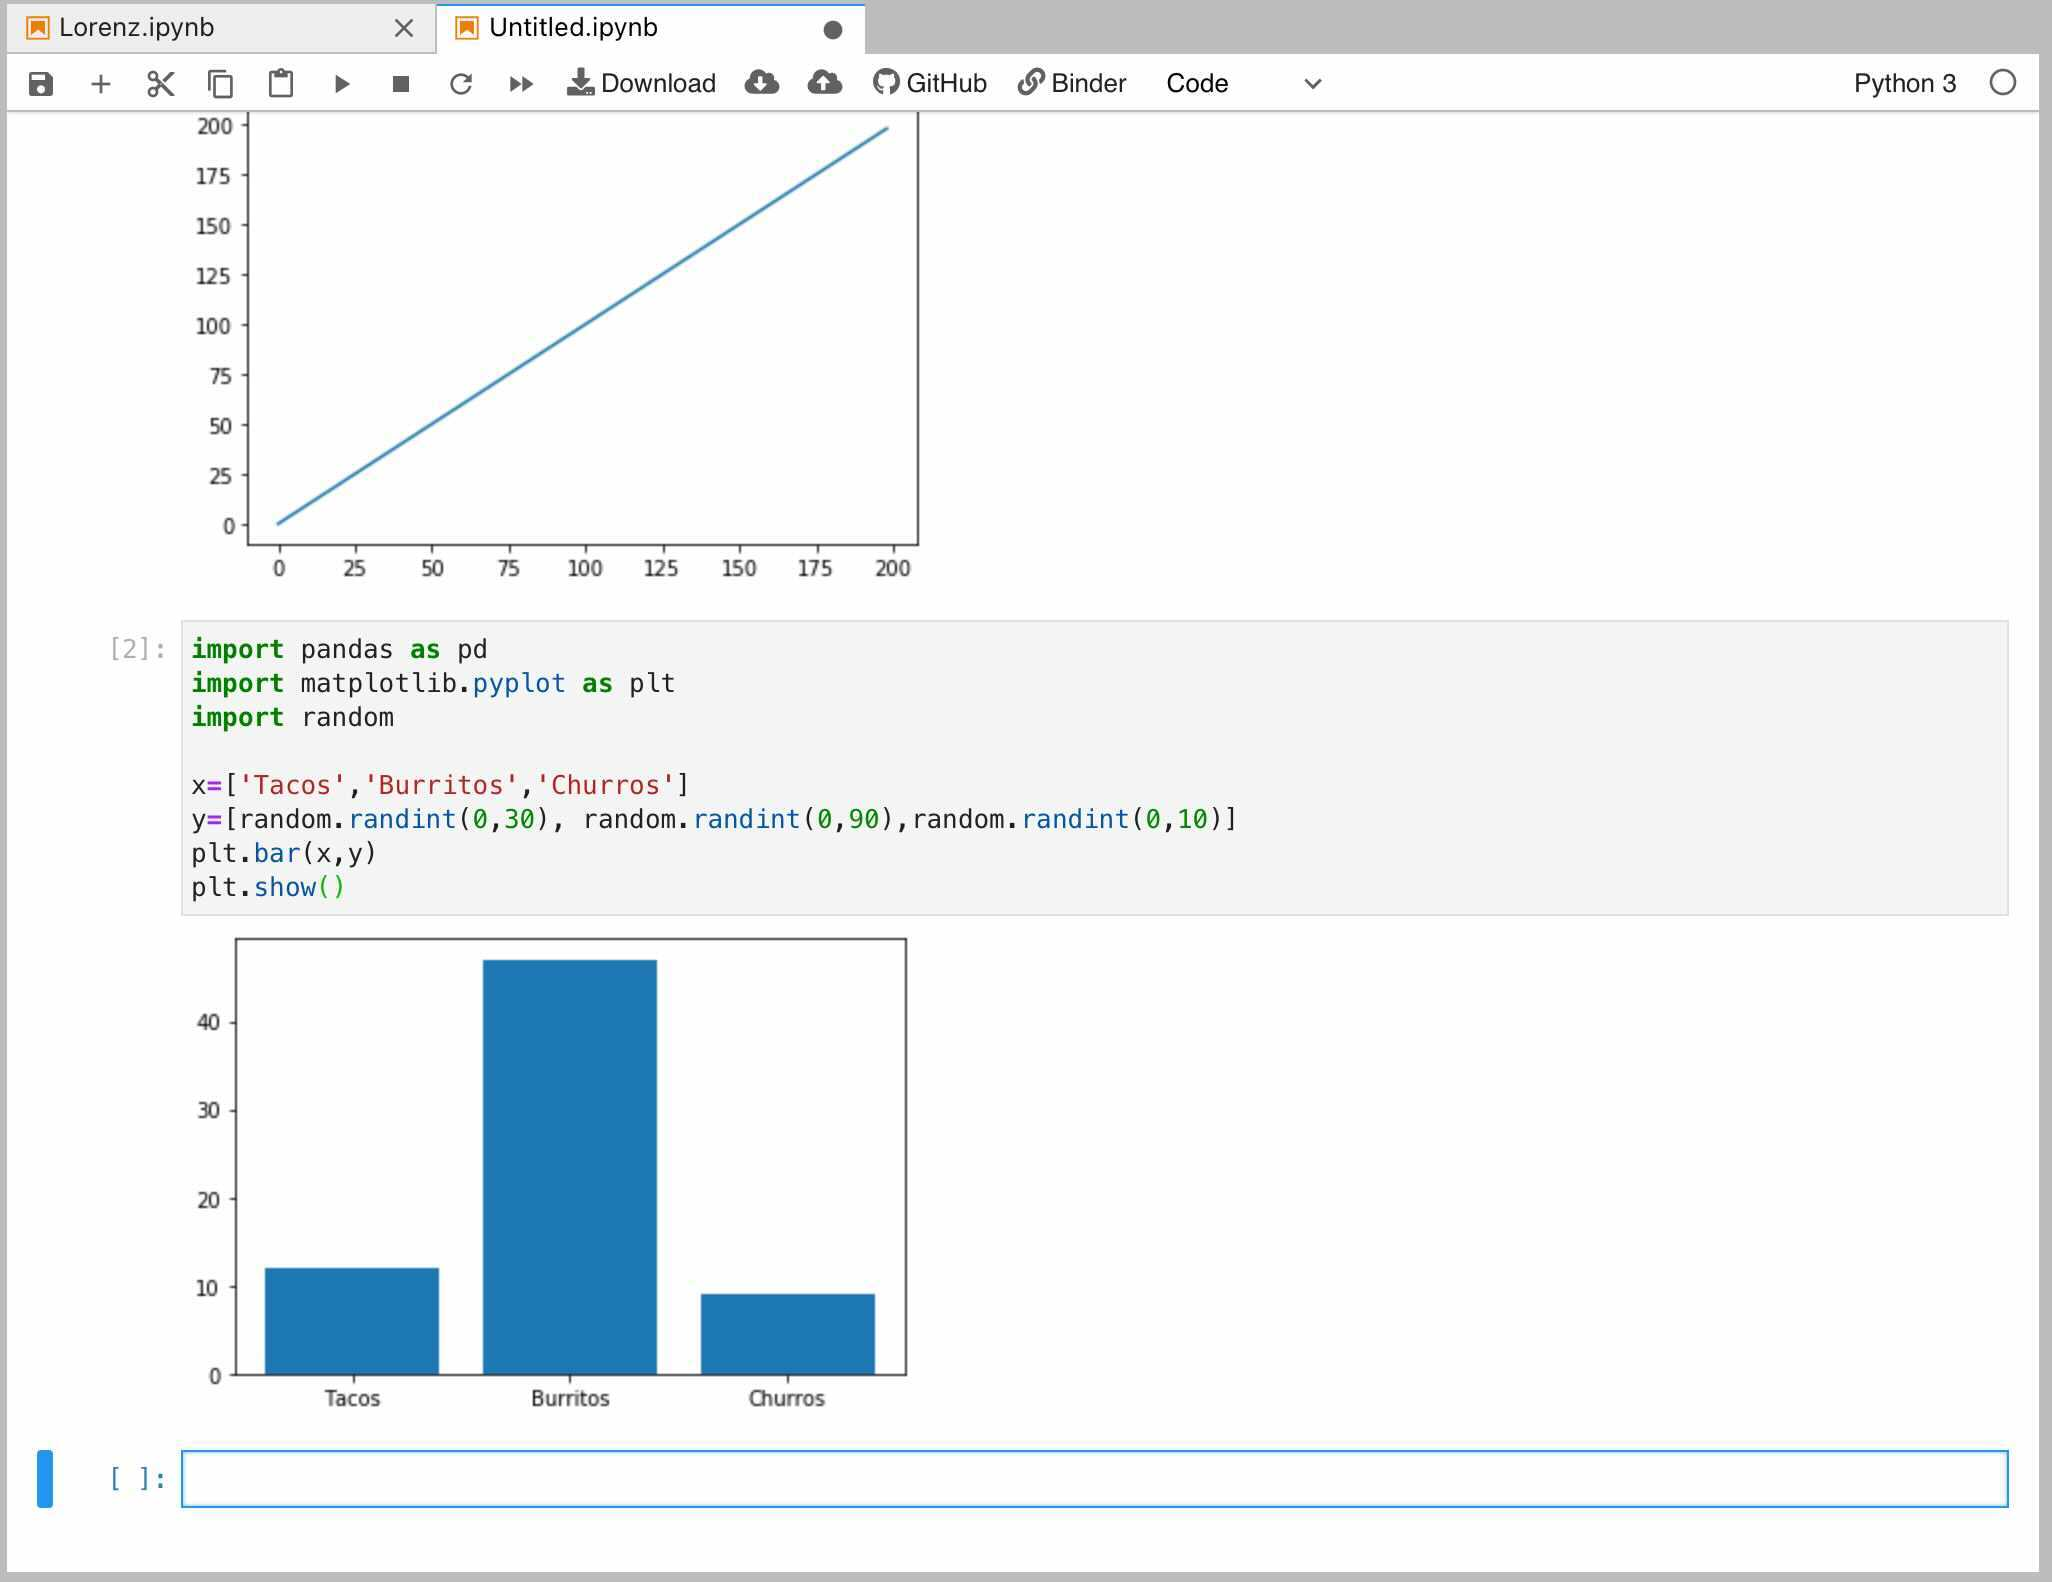 jupyter notebook with code and bar graph